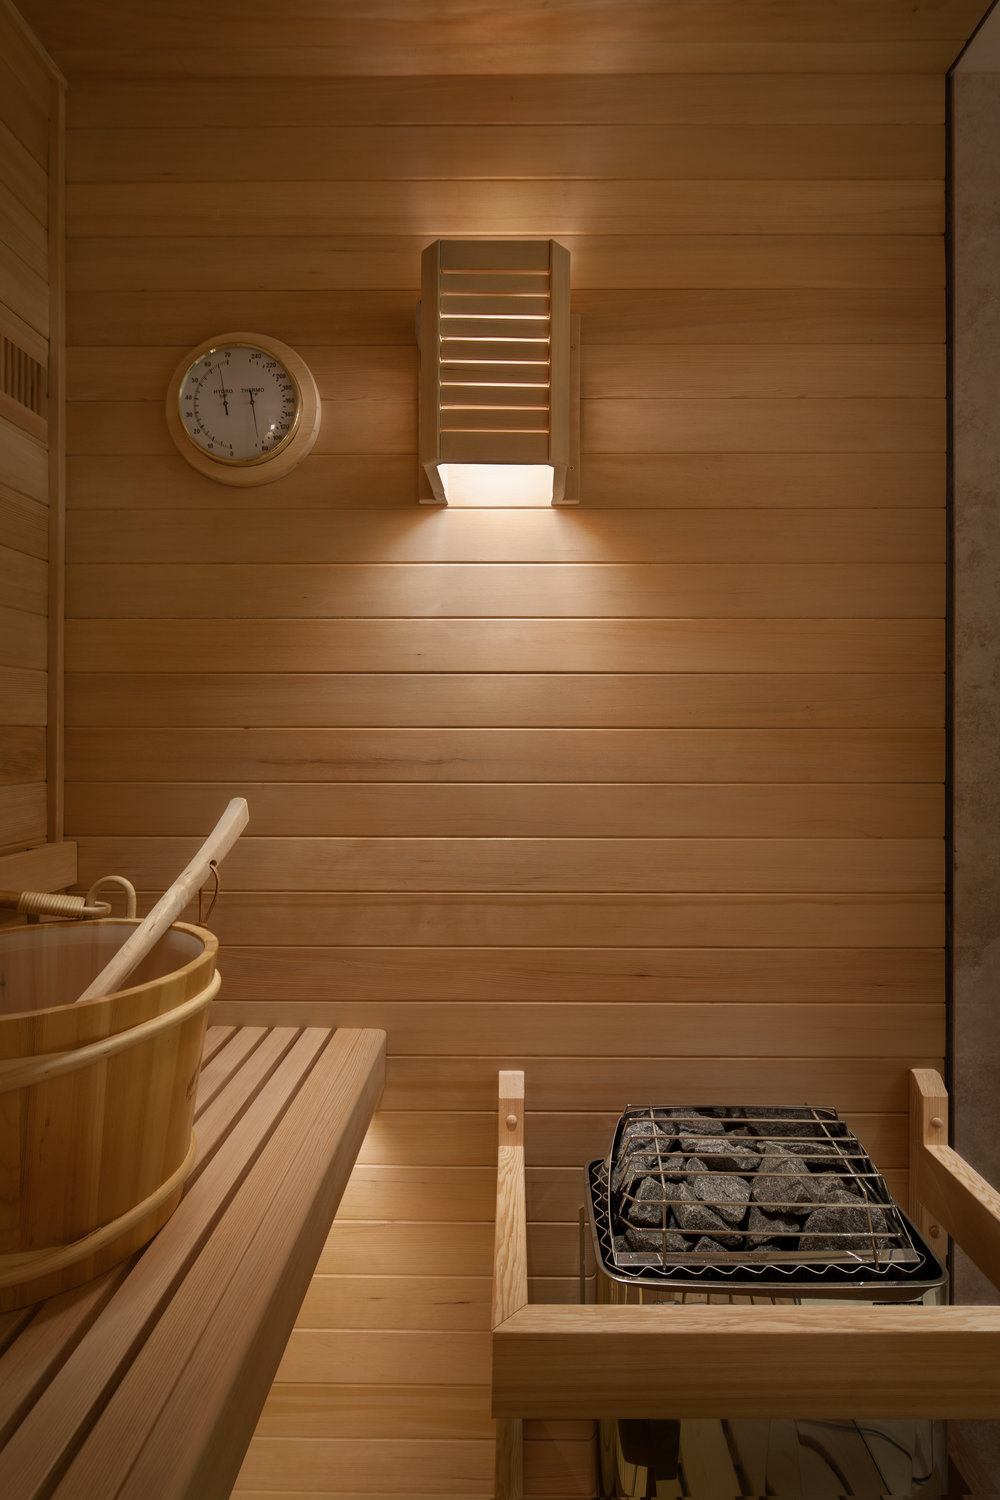 TBS_Woodside_Sauna_Large-6.jpg